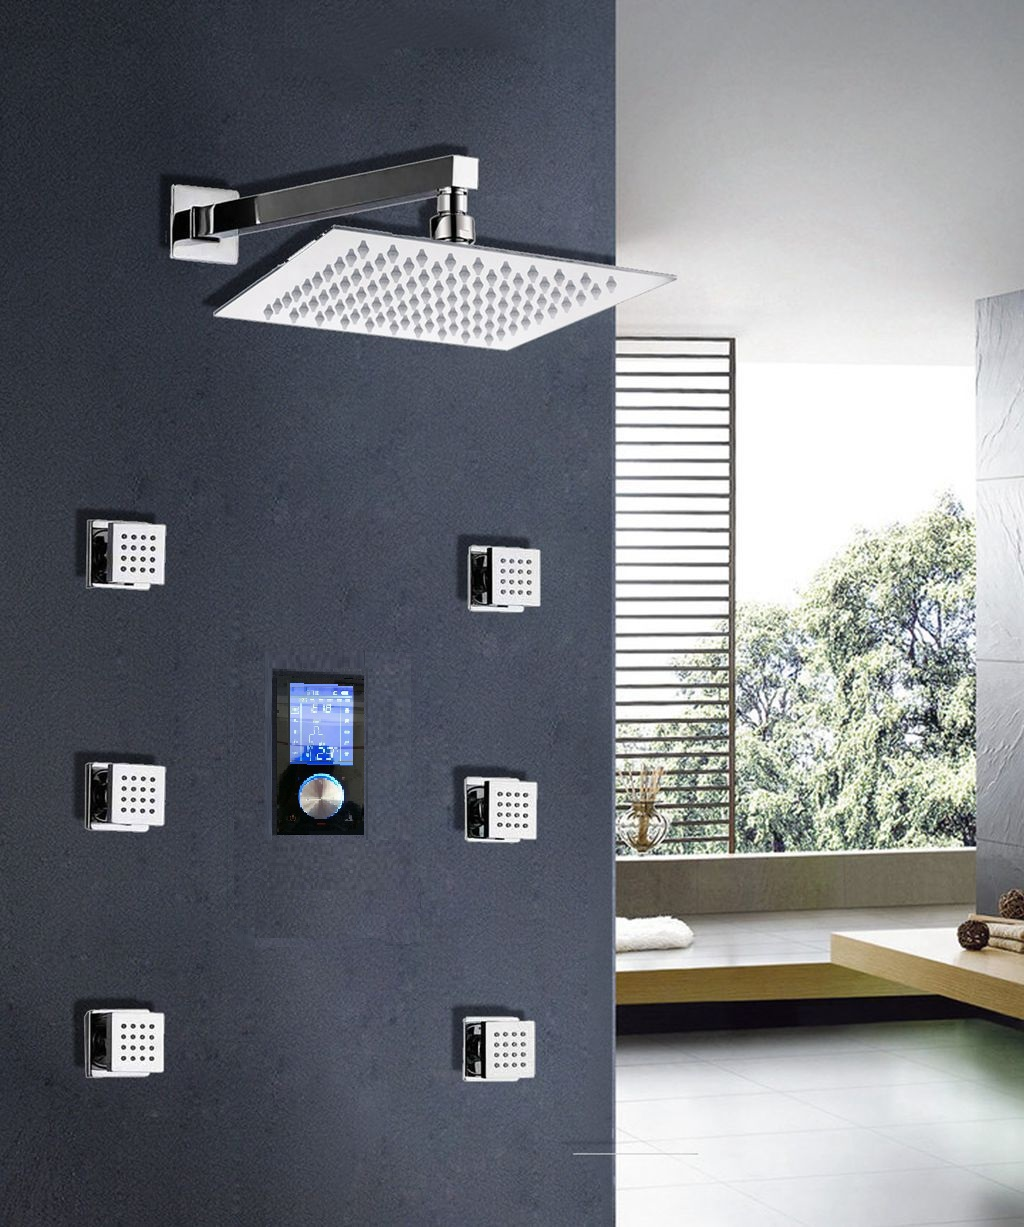 Sensational Multicolor Led Shower Head System For Your | Bathroom